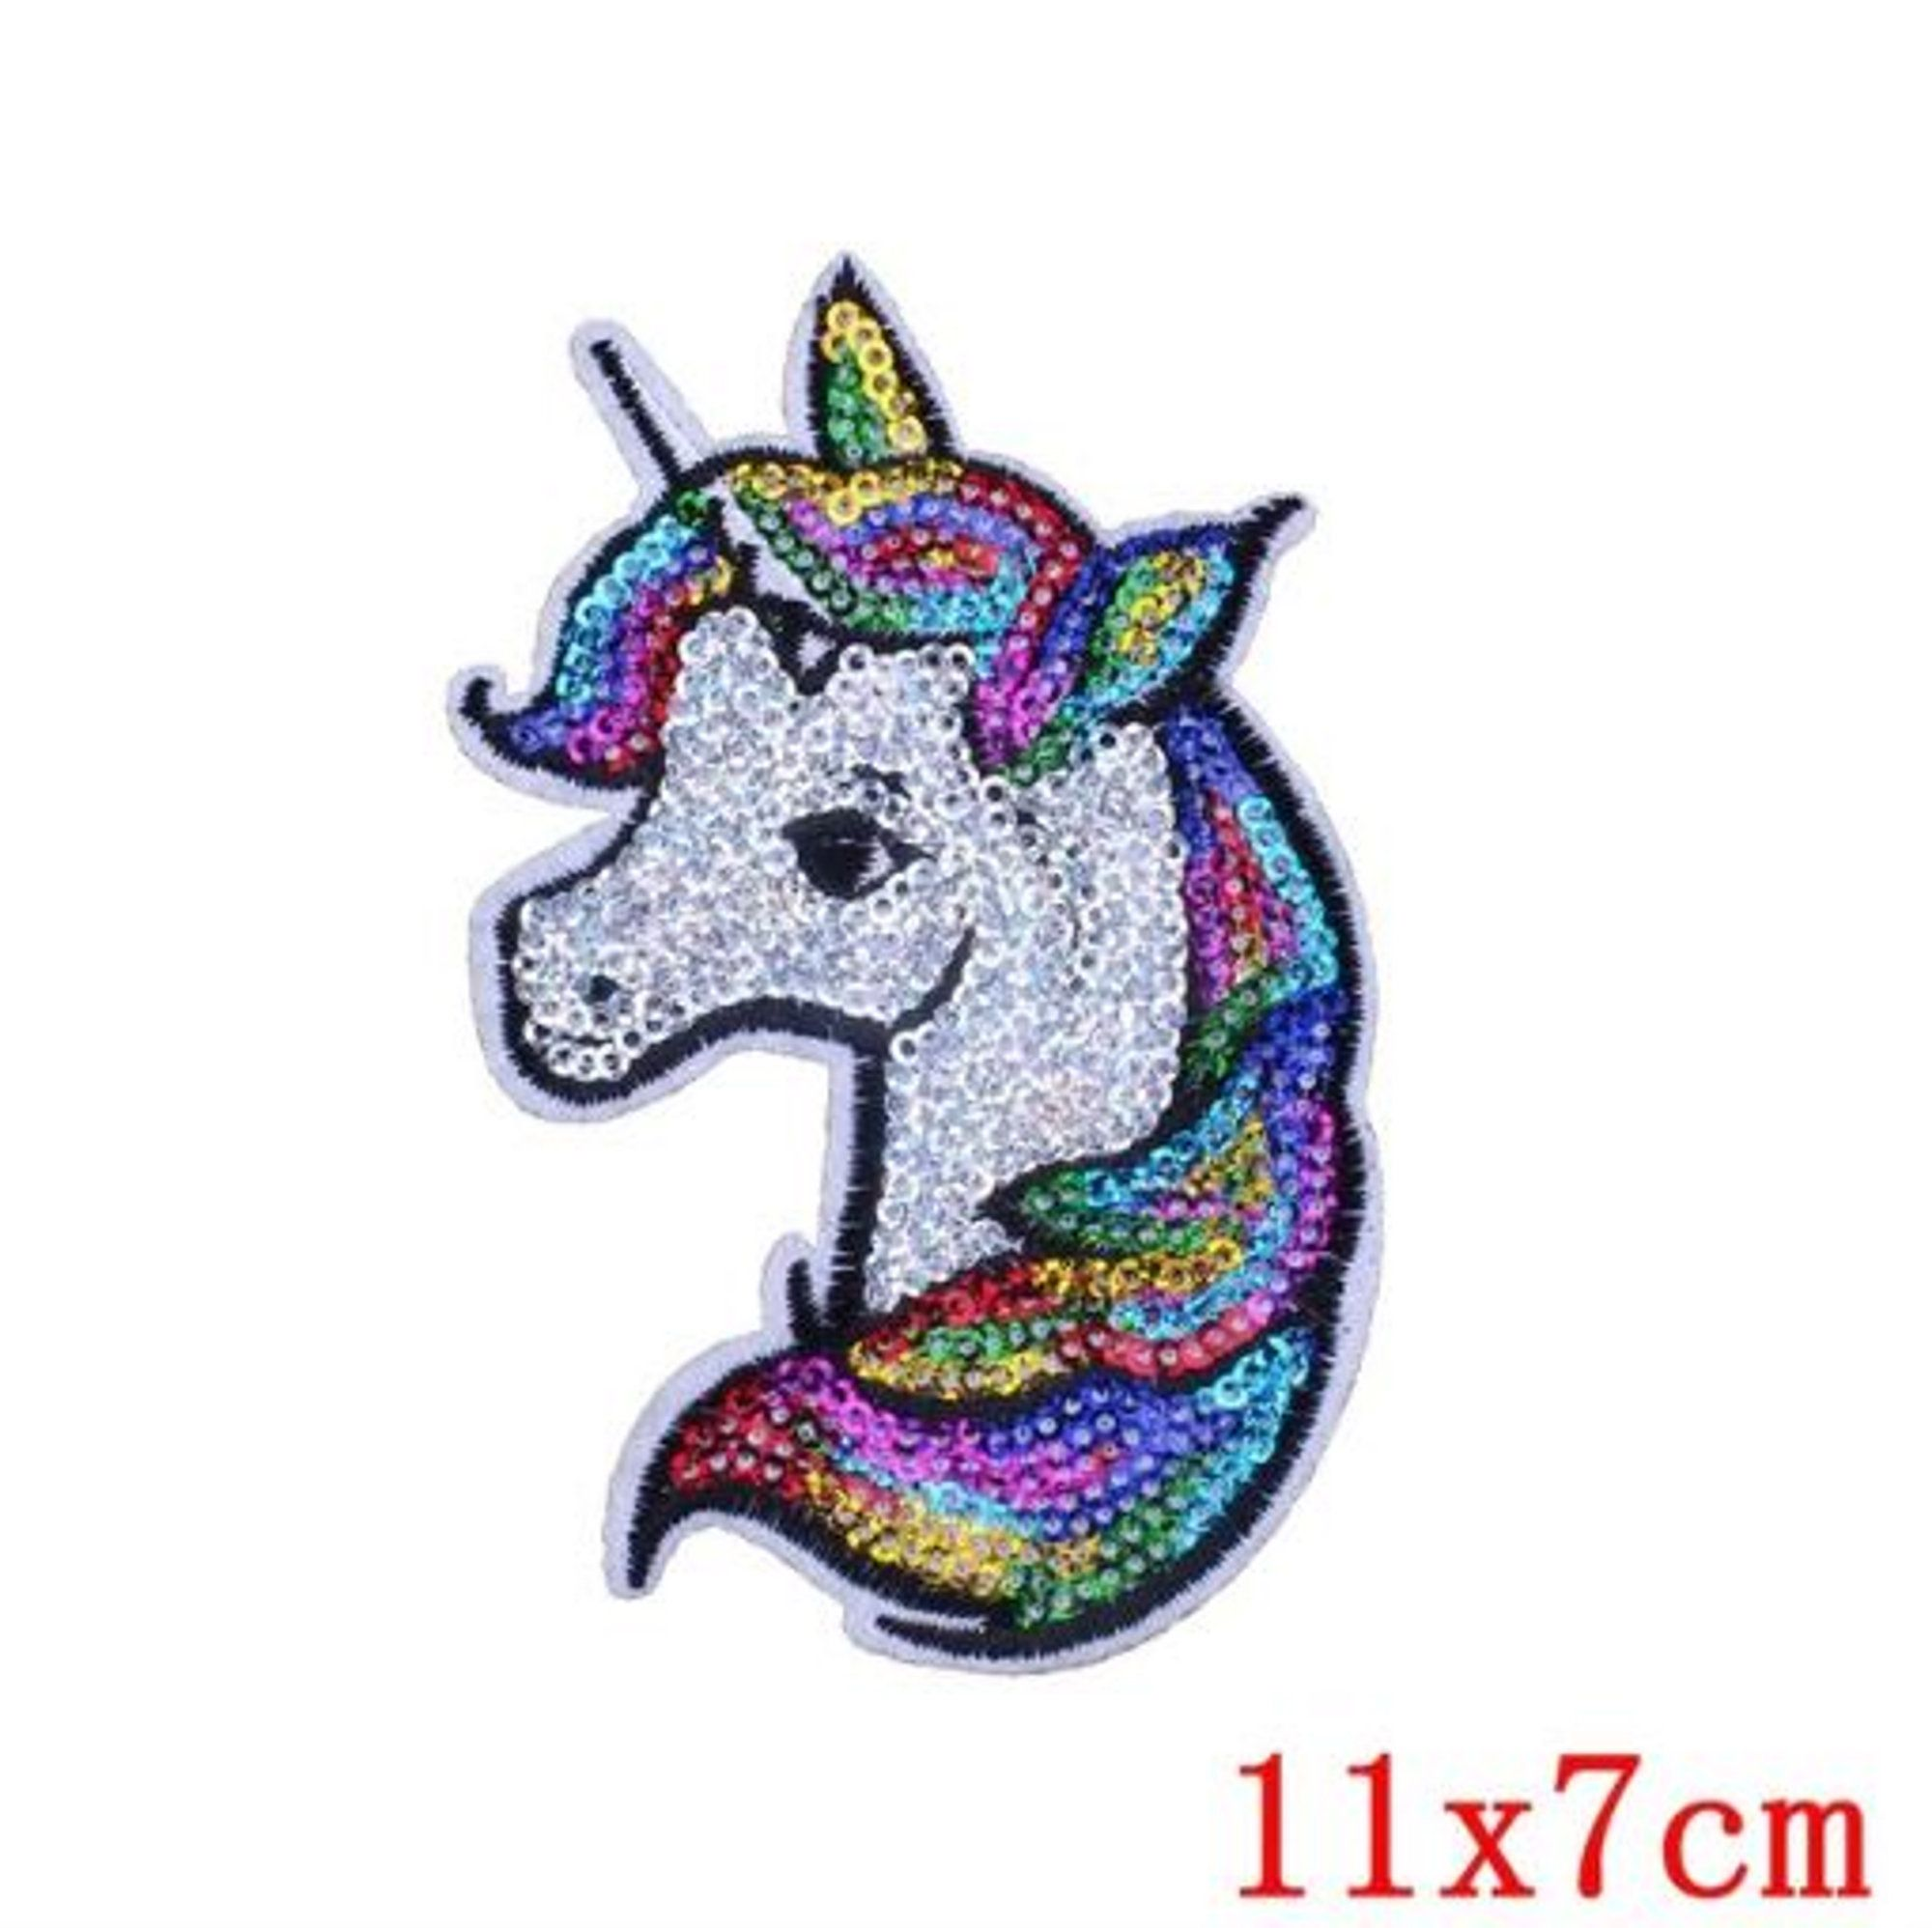 Cute Unicorn Embroidered Patch Iron On Sewing Applique Badge Apparel Craft DIY